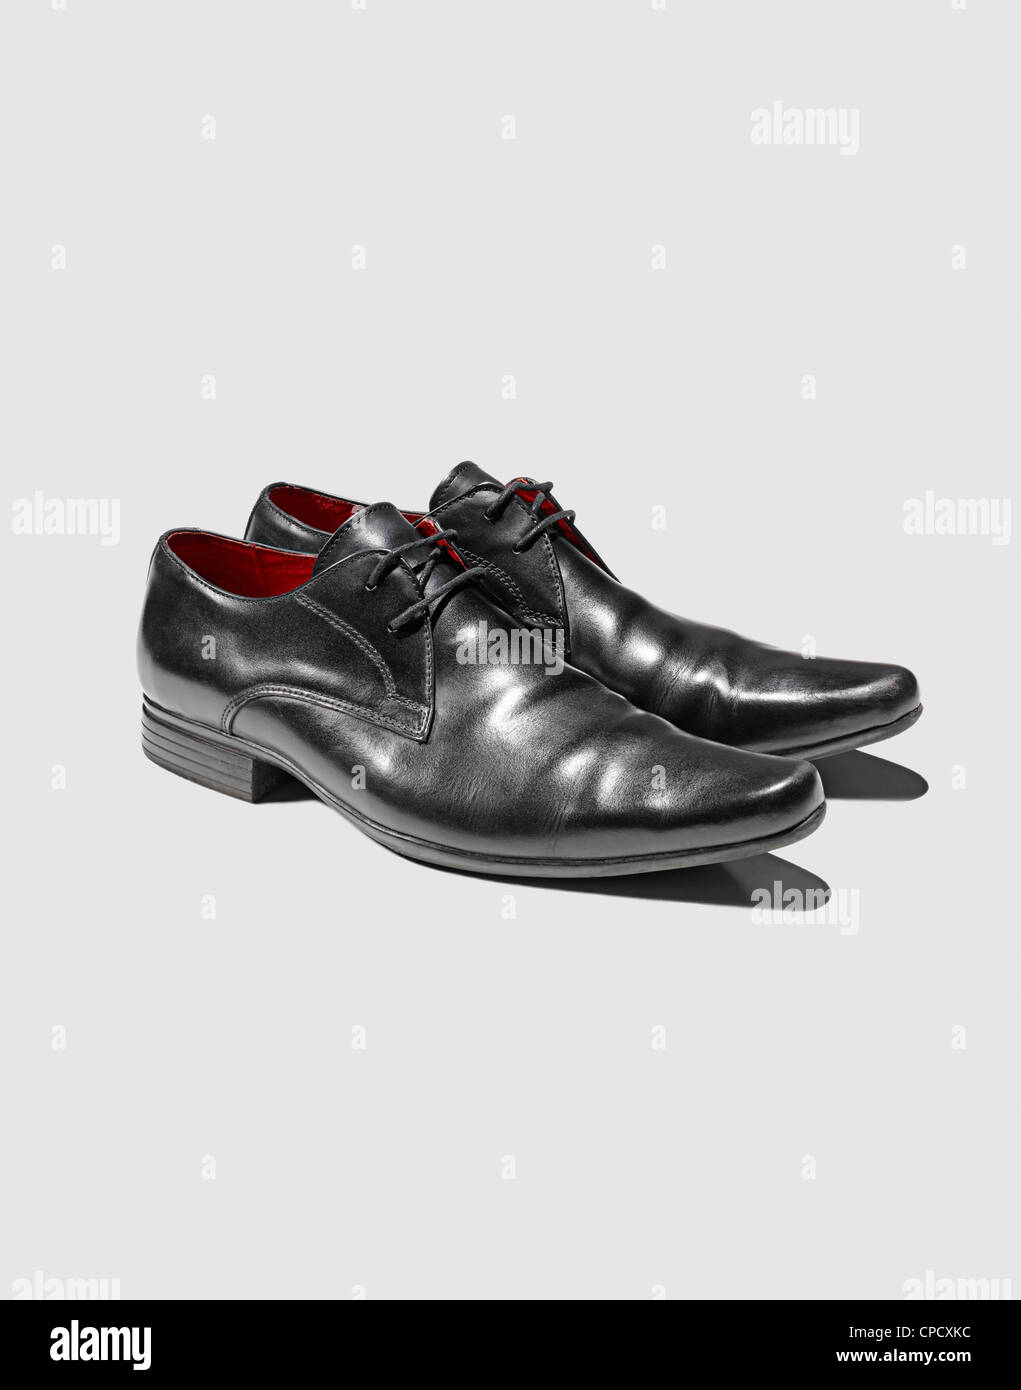 021feefd Close up of mans dress shoes Stock Photo: 48227520 - Alamy